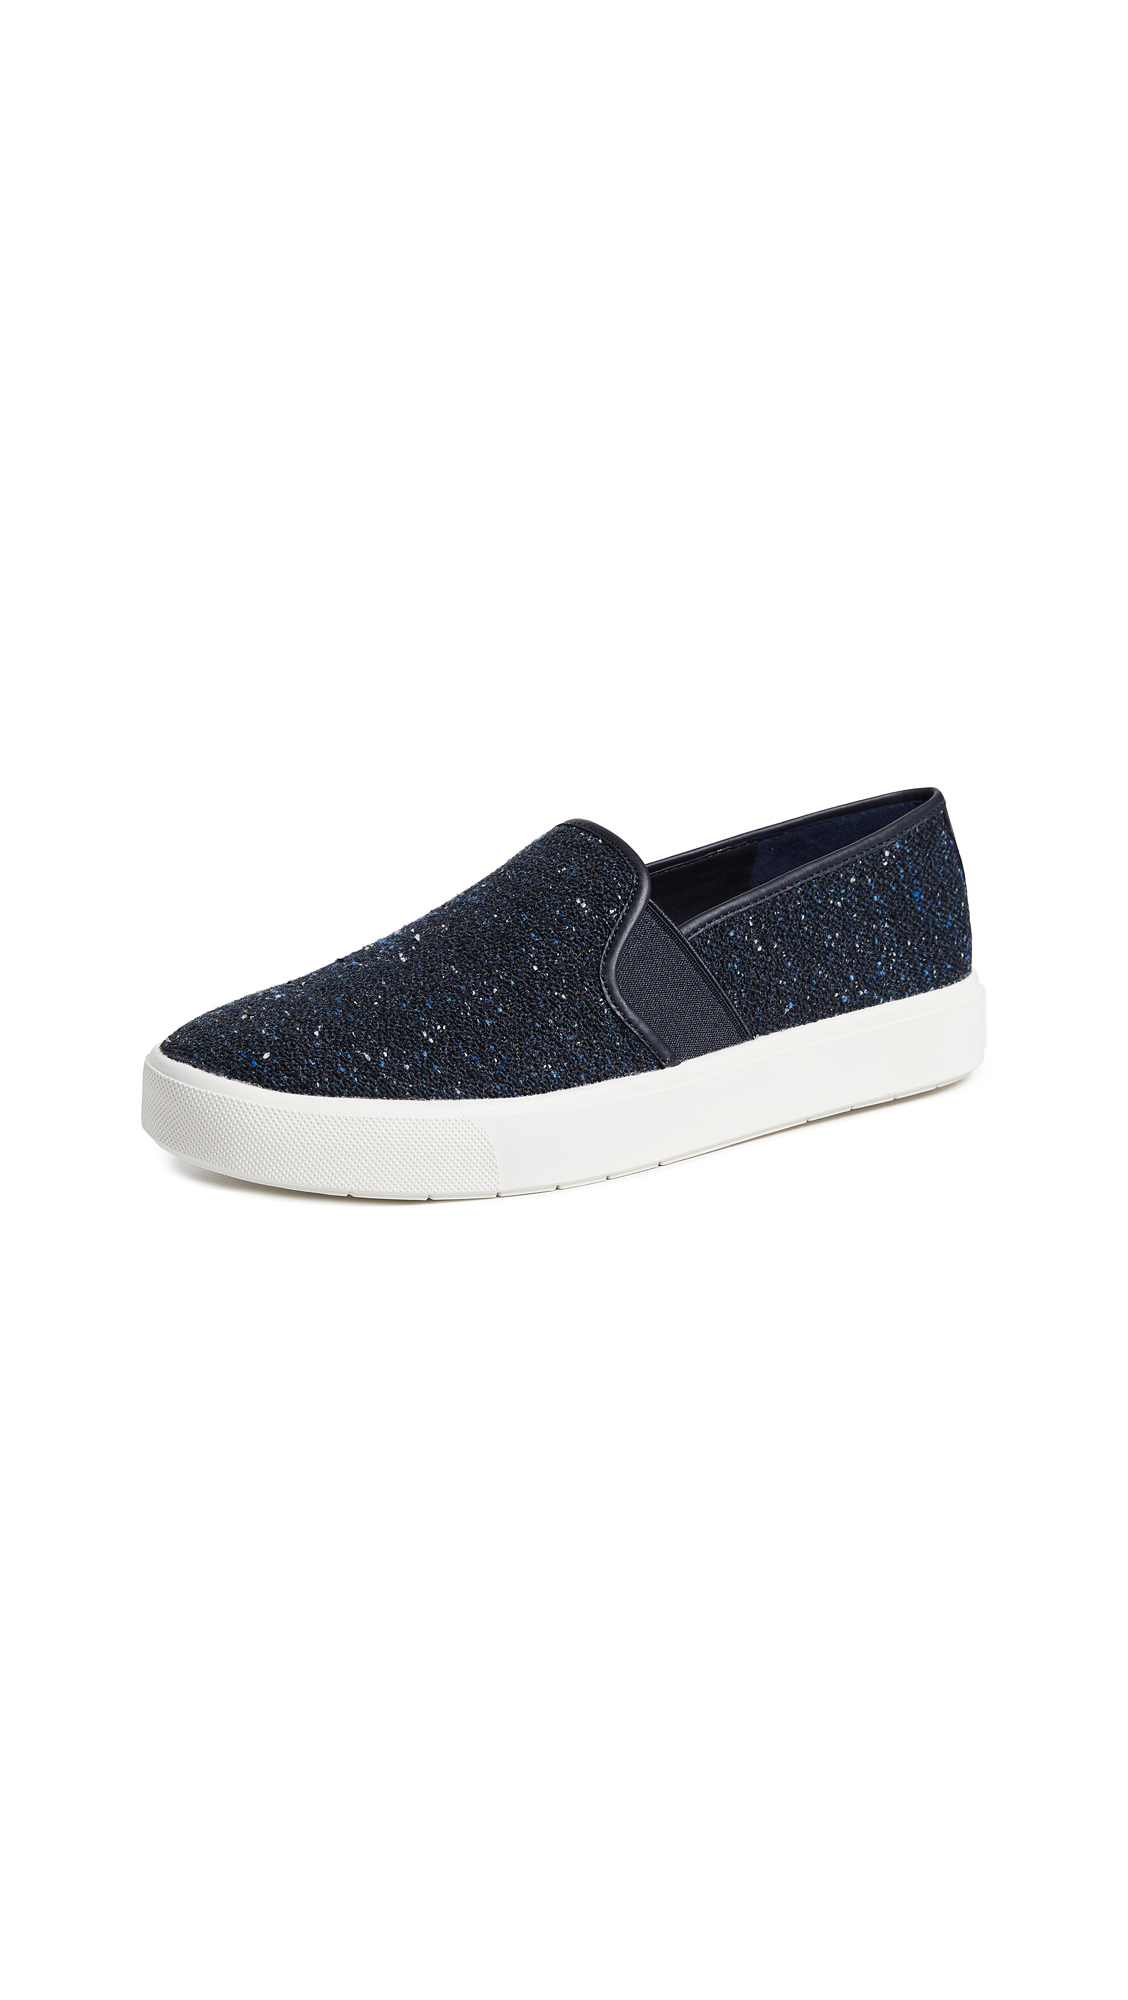 Vince Blair Slip On Sneakers - Navy